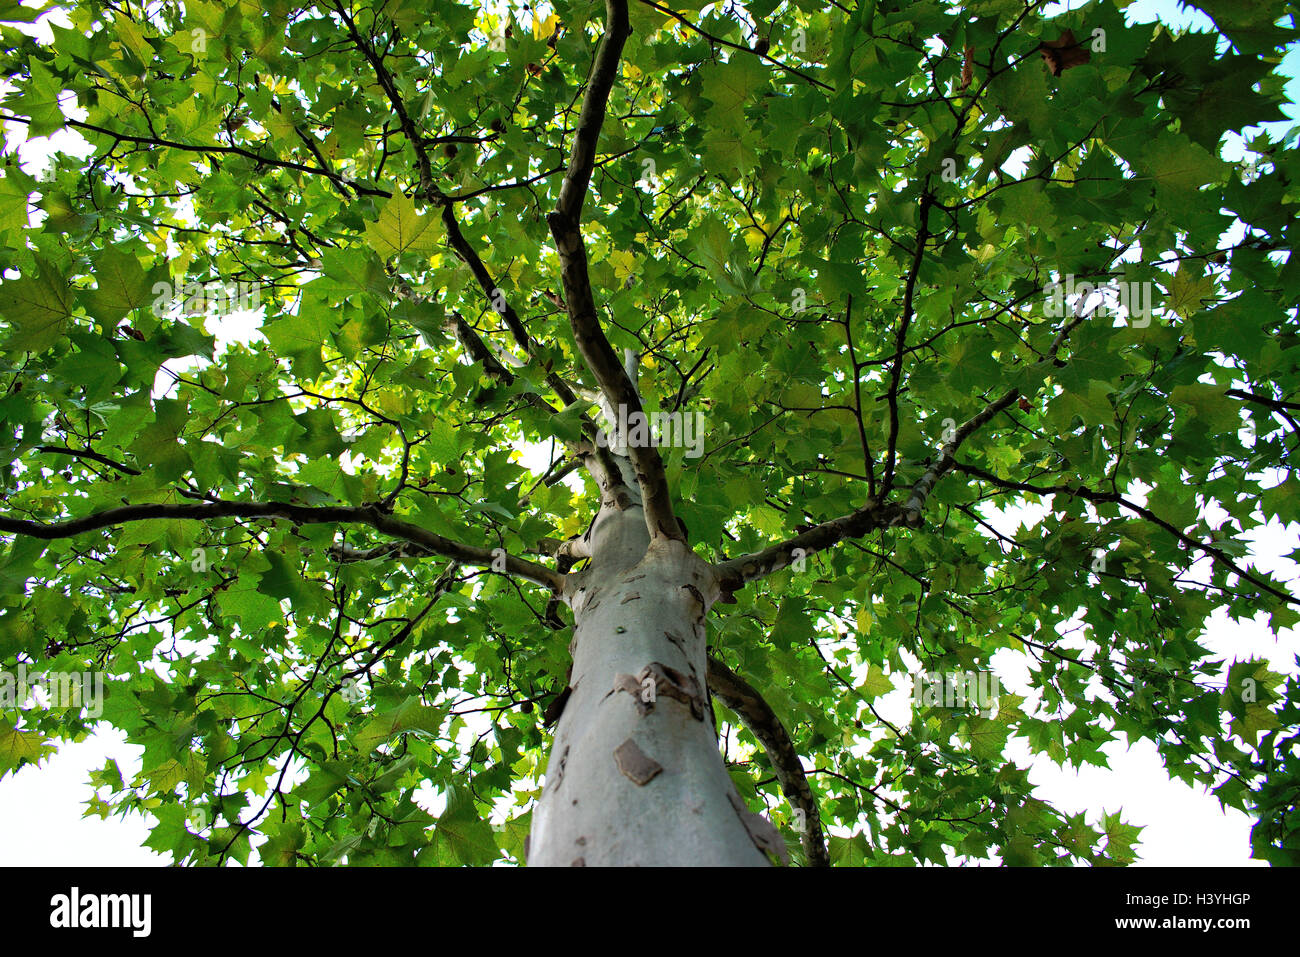 A birch tree treetop canopy & A birch tree treetop canopy Stock Photo Royalty Free Image ...